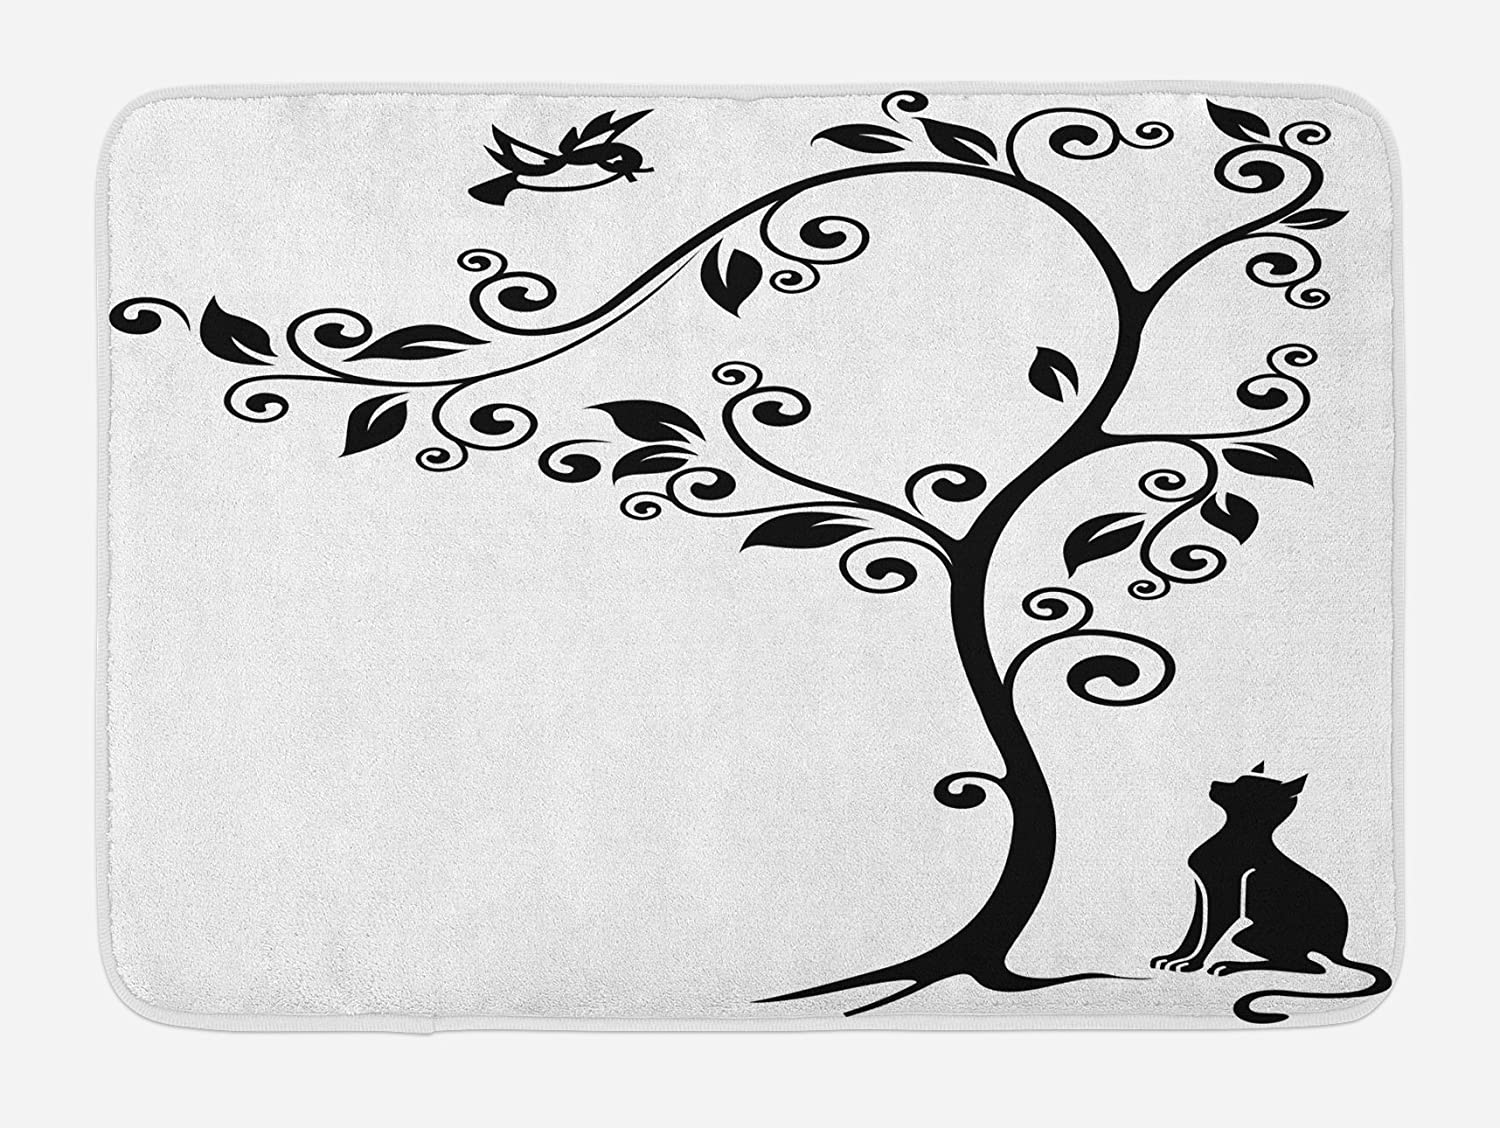 Lunarable Cat Bath Mat, Silhouette of Kitty Under Tree and Birds on Swirled Branches Illustration, Plush Bathroom Decor Mat with Non Slip Backing, 29.5